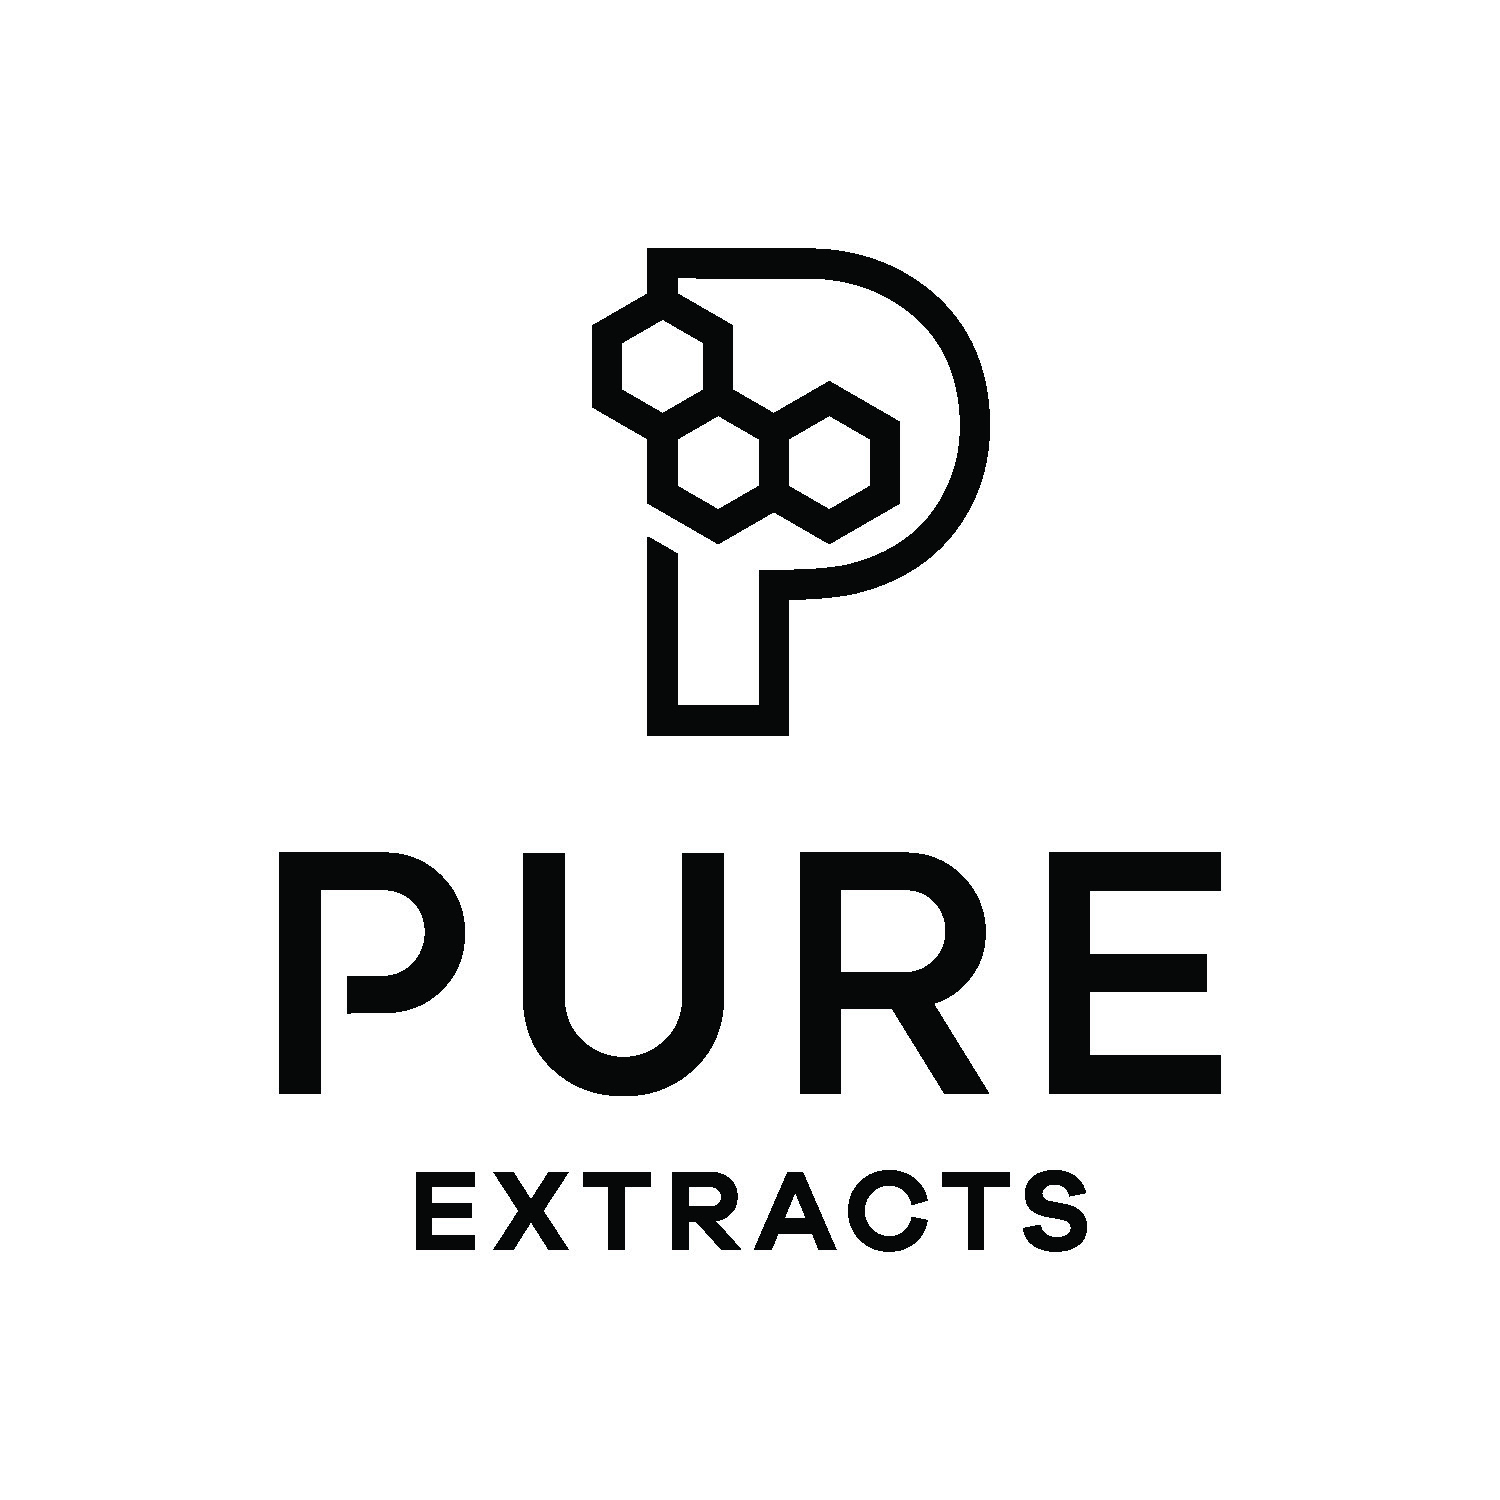 REPEAT - Pure Extracts Announces Its First Commercial Sale of CBD Oil on the Wholesale Market